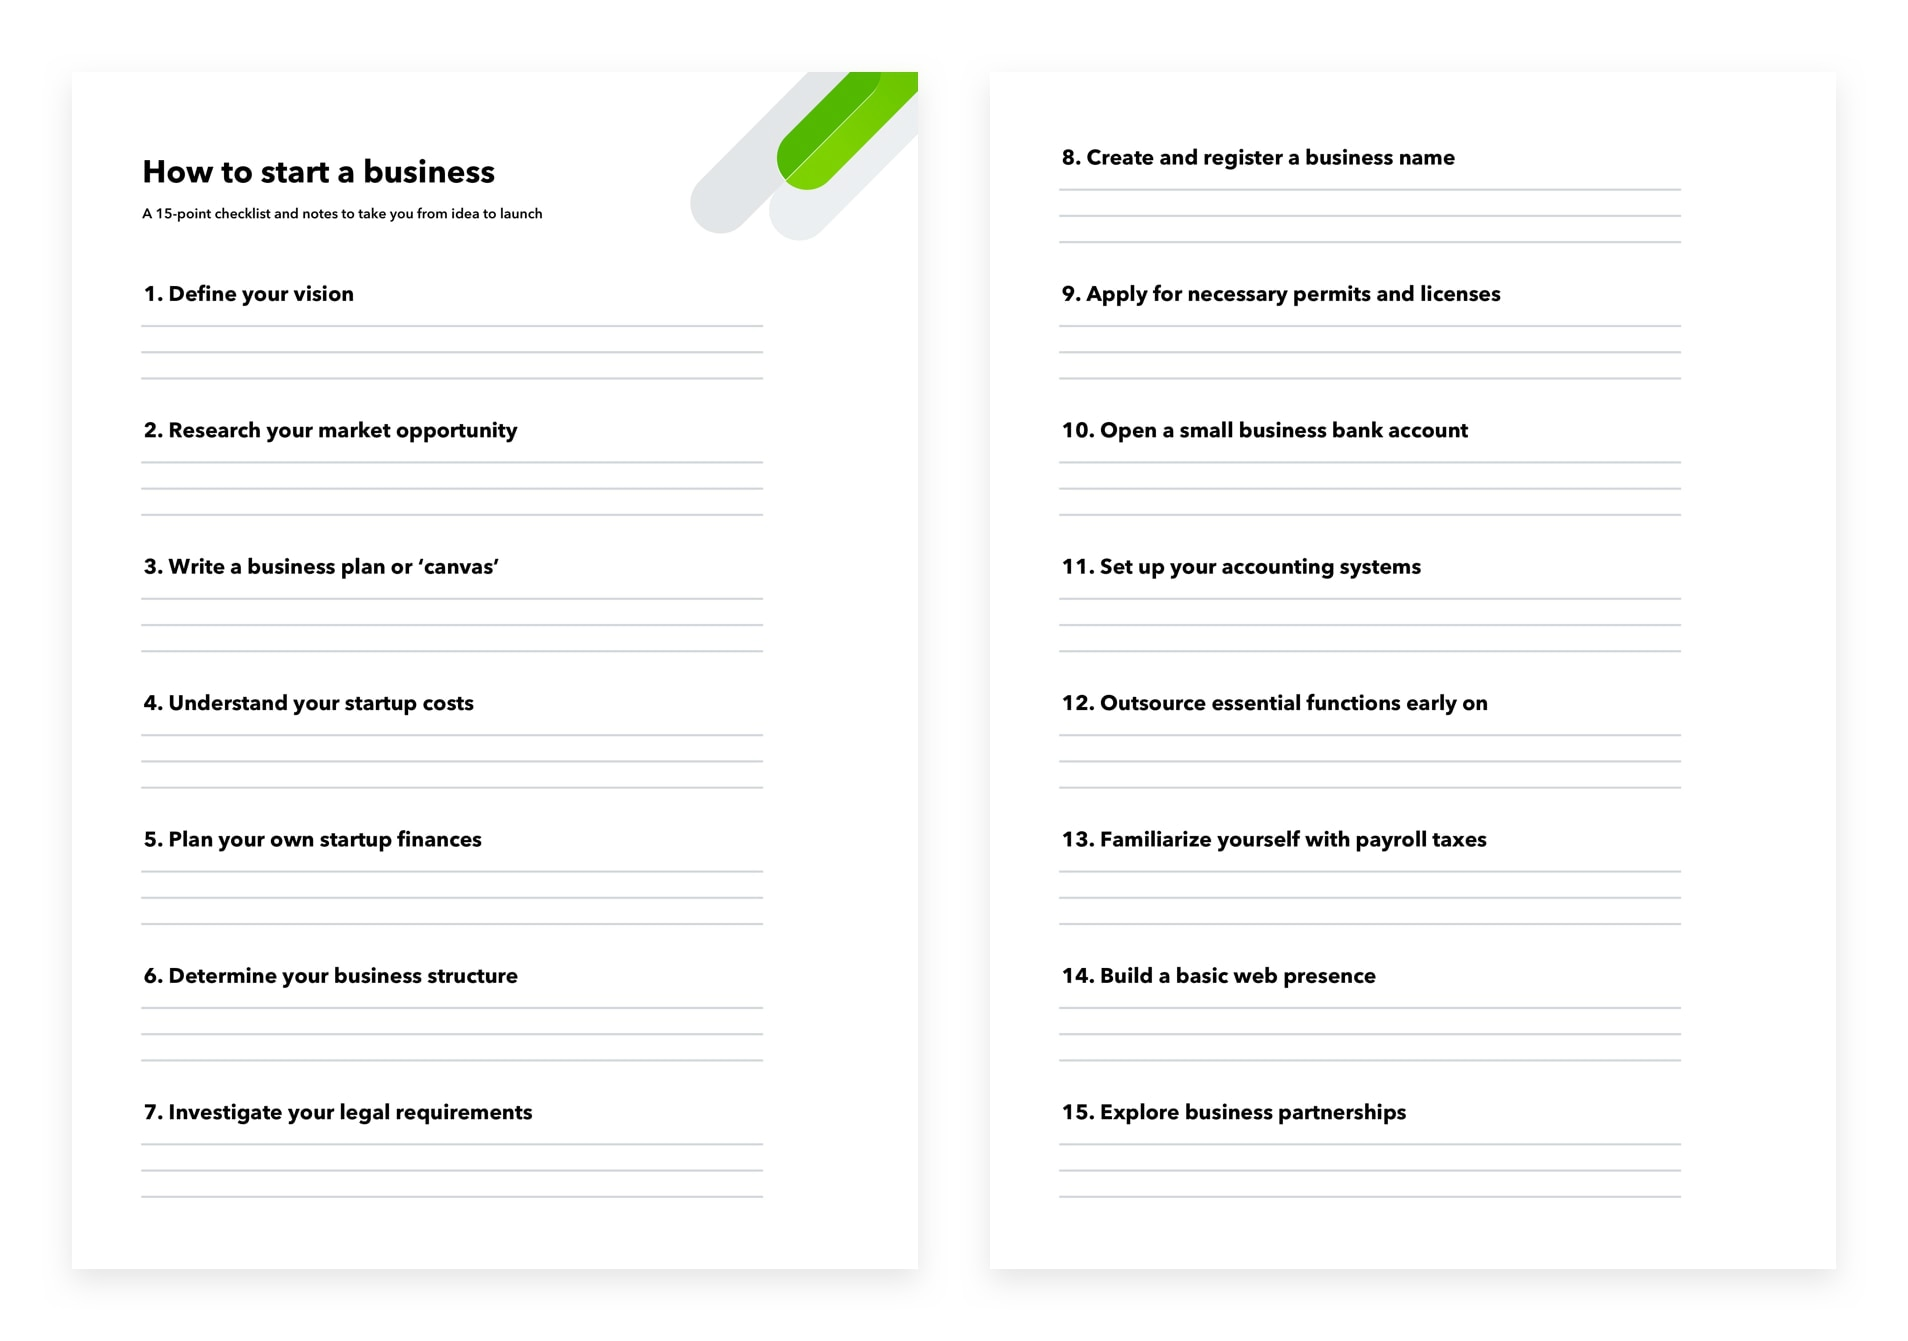 How to start a business in 15 steps: Guide, checklist, and